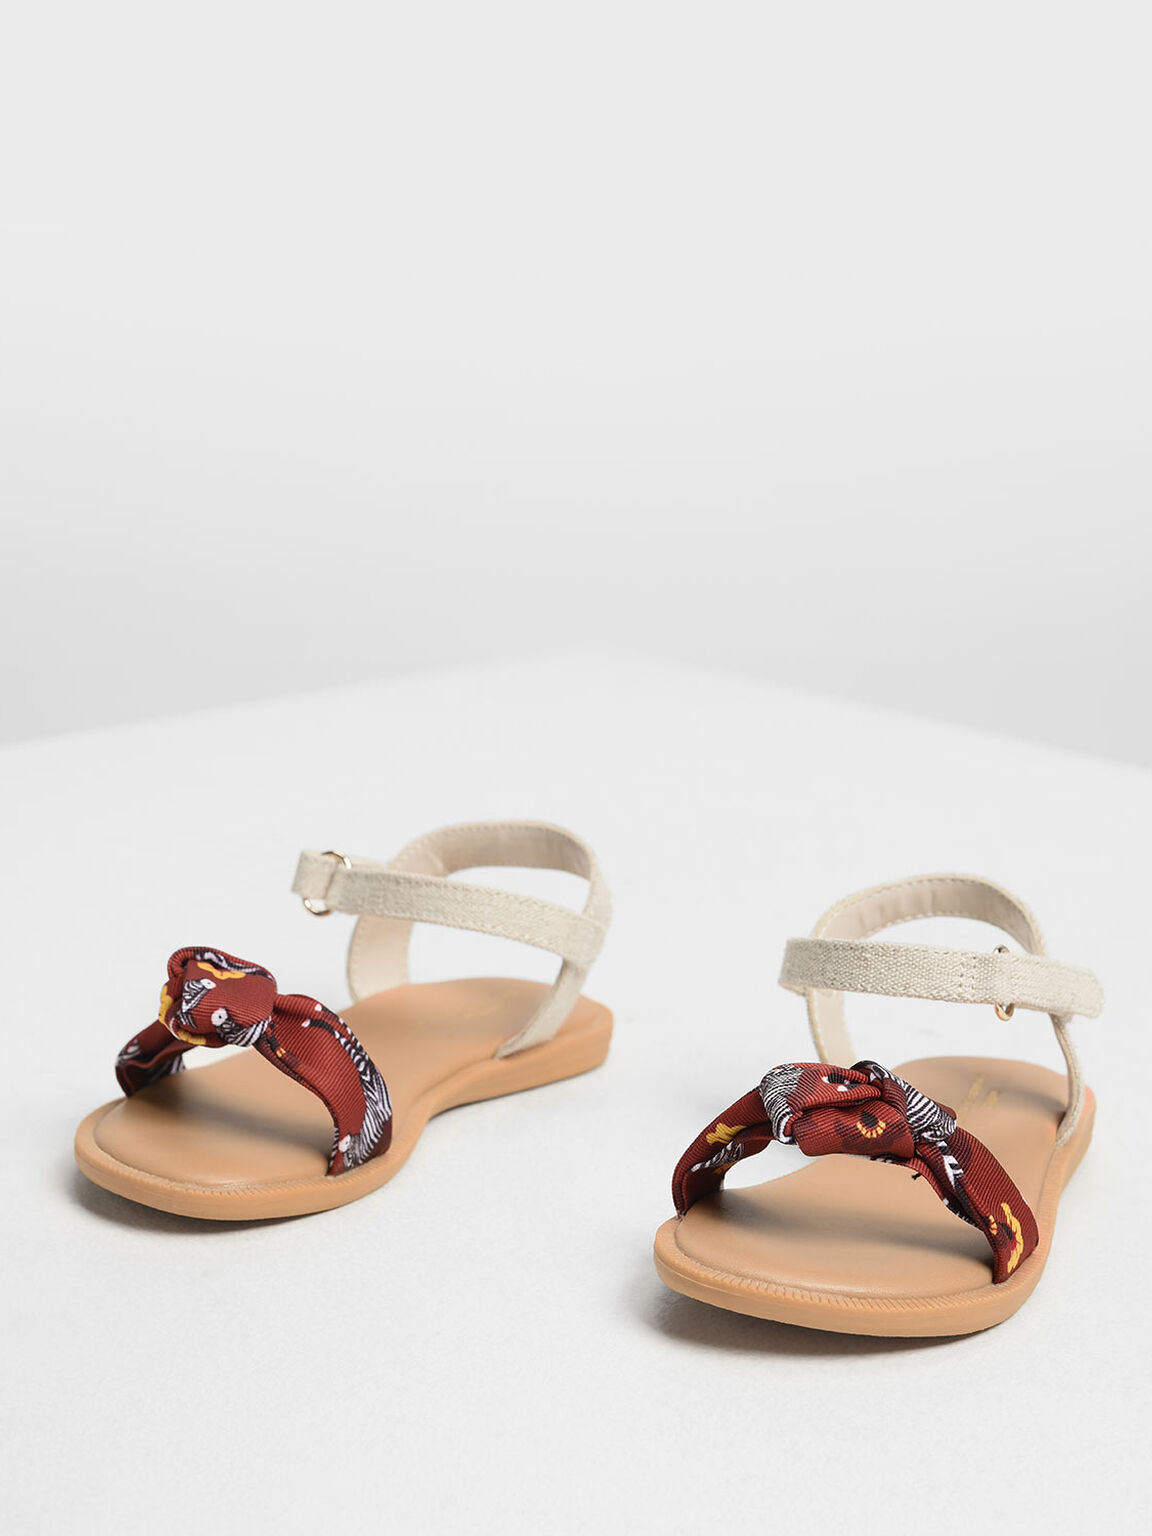 Girls' Zebra Print Sandals, Red, hi-res